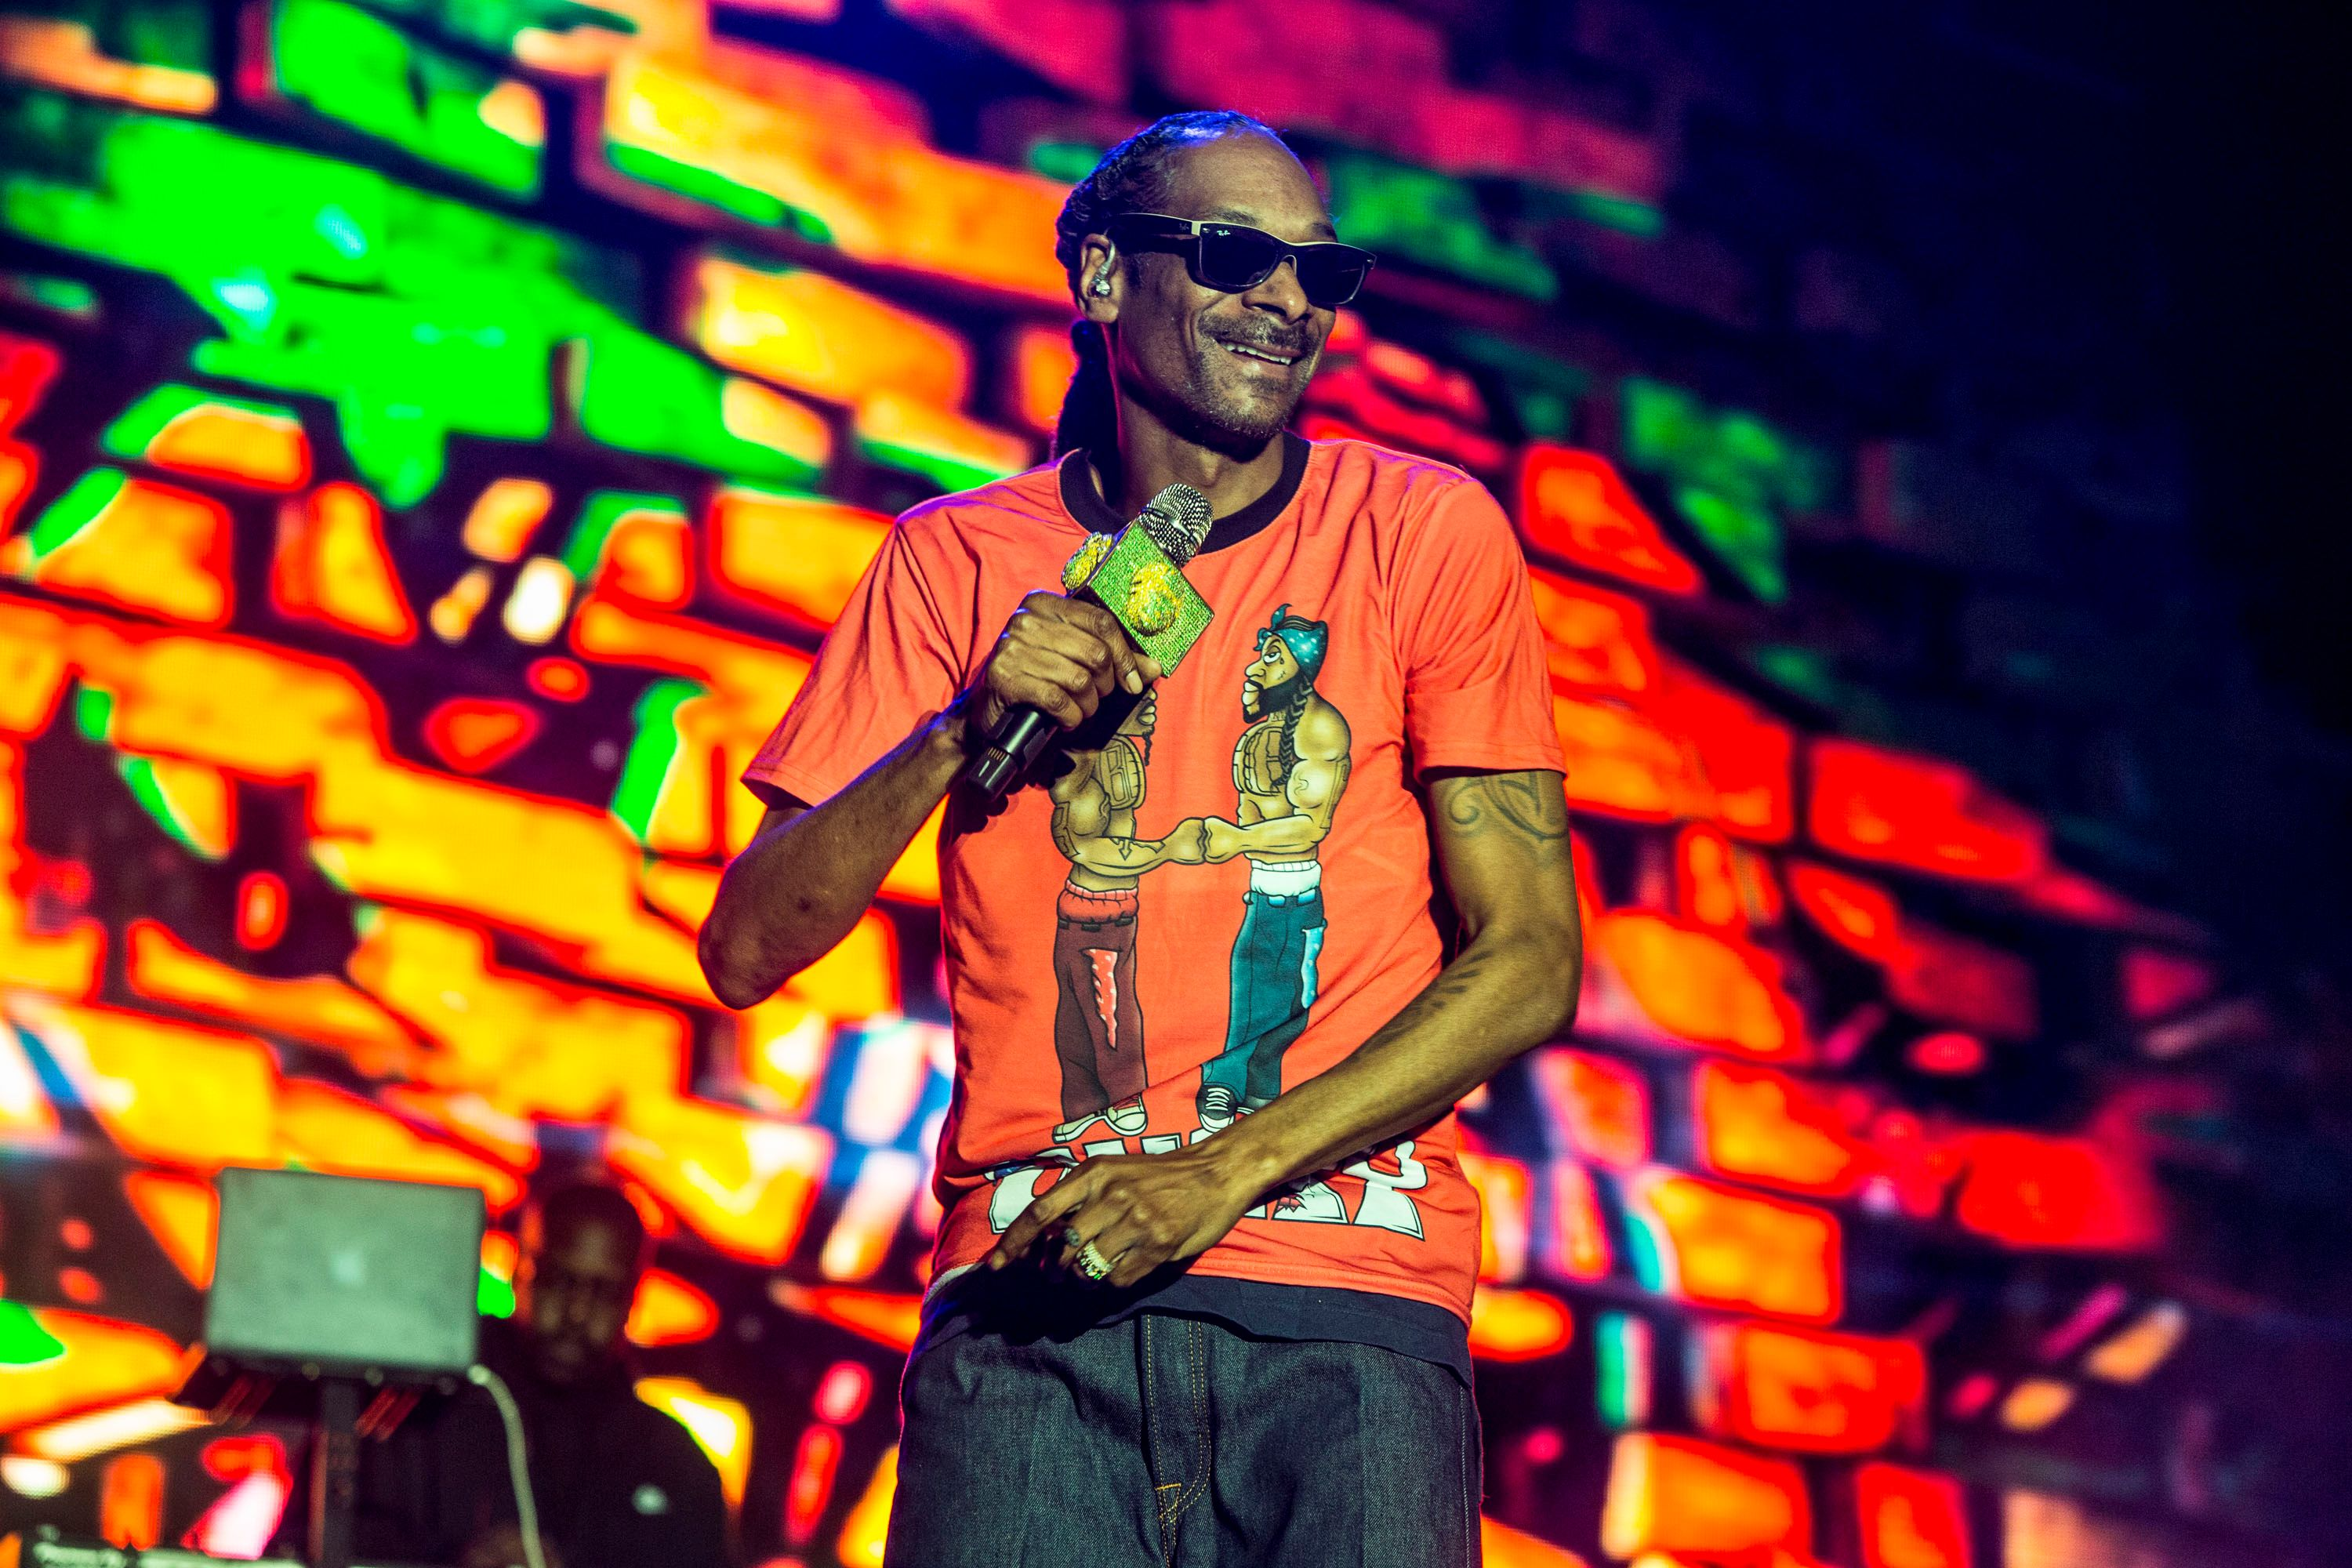 Snoop Dogg at the Del Mar Race Track on September 13, 2019 in California. | Photo: Getty Images